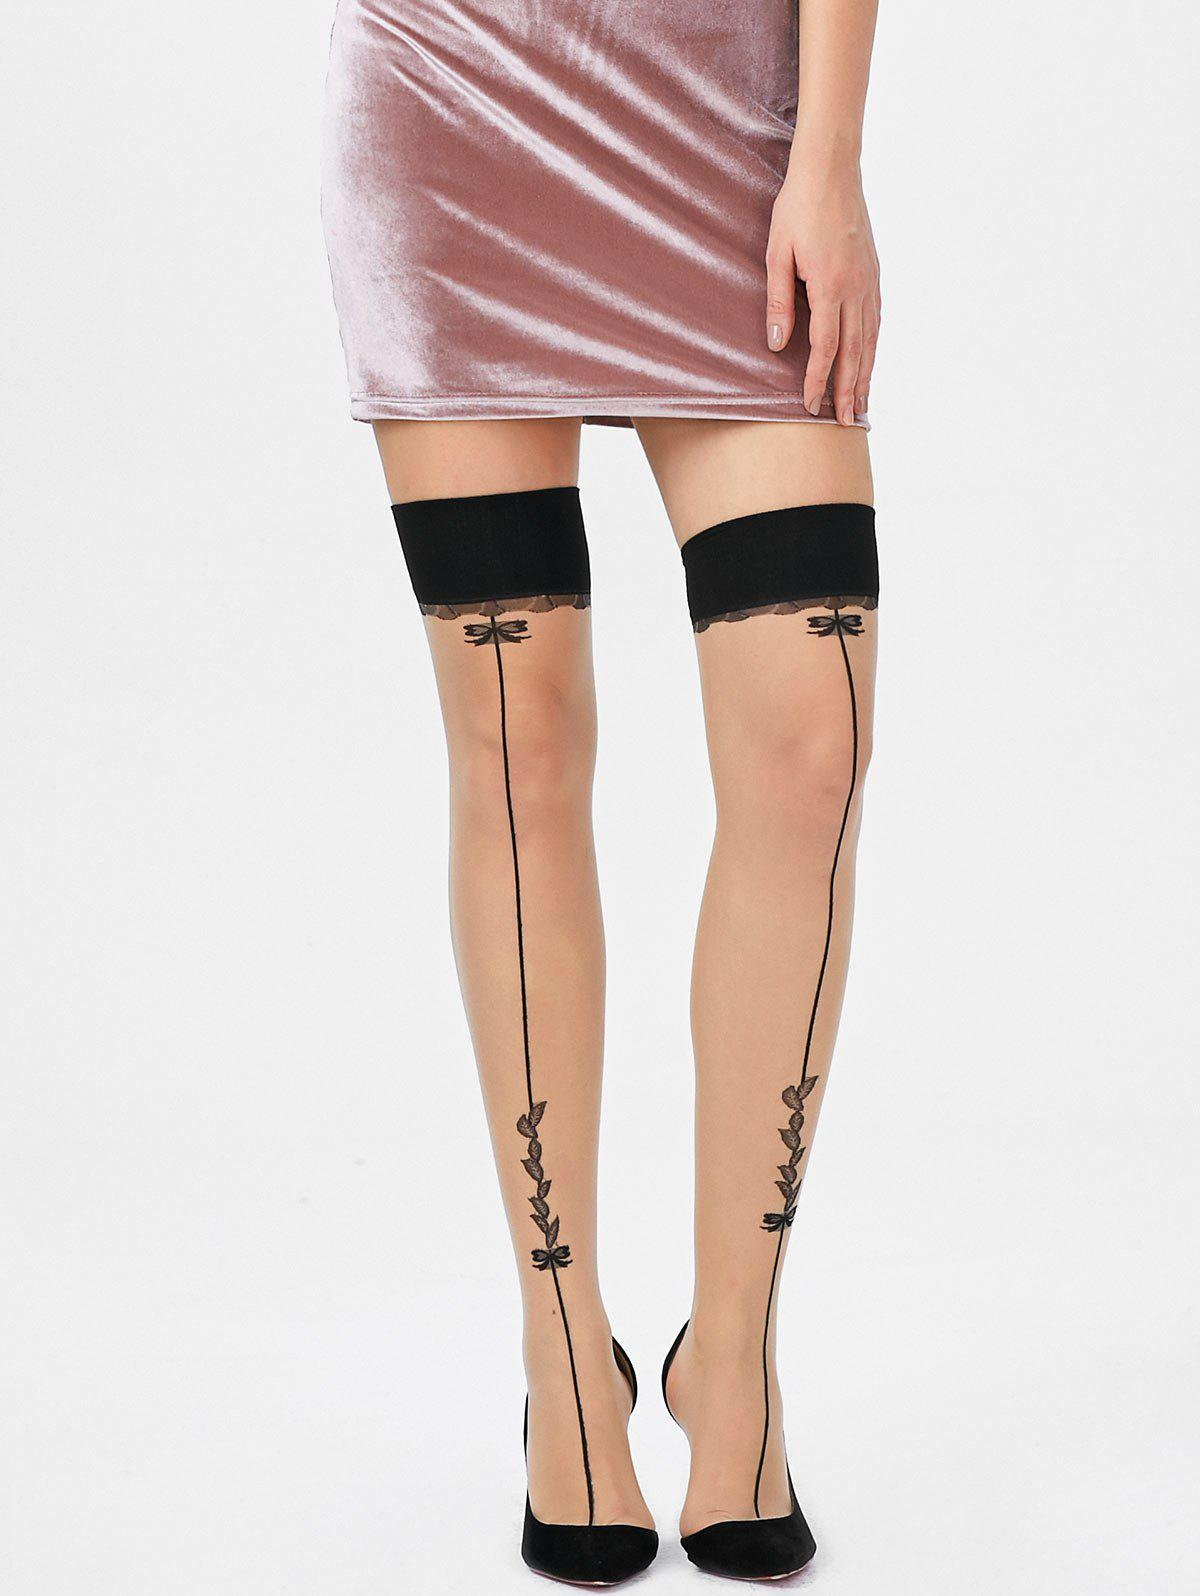 Overknee Leaves Graphic Sheer Tights - BLACK ONE SIZE